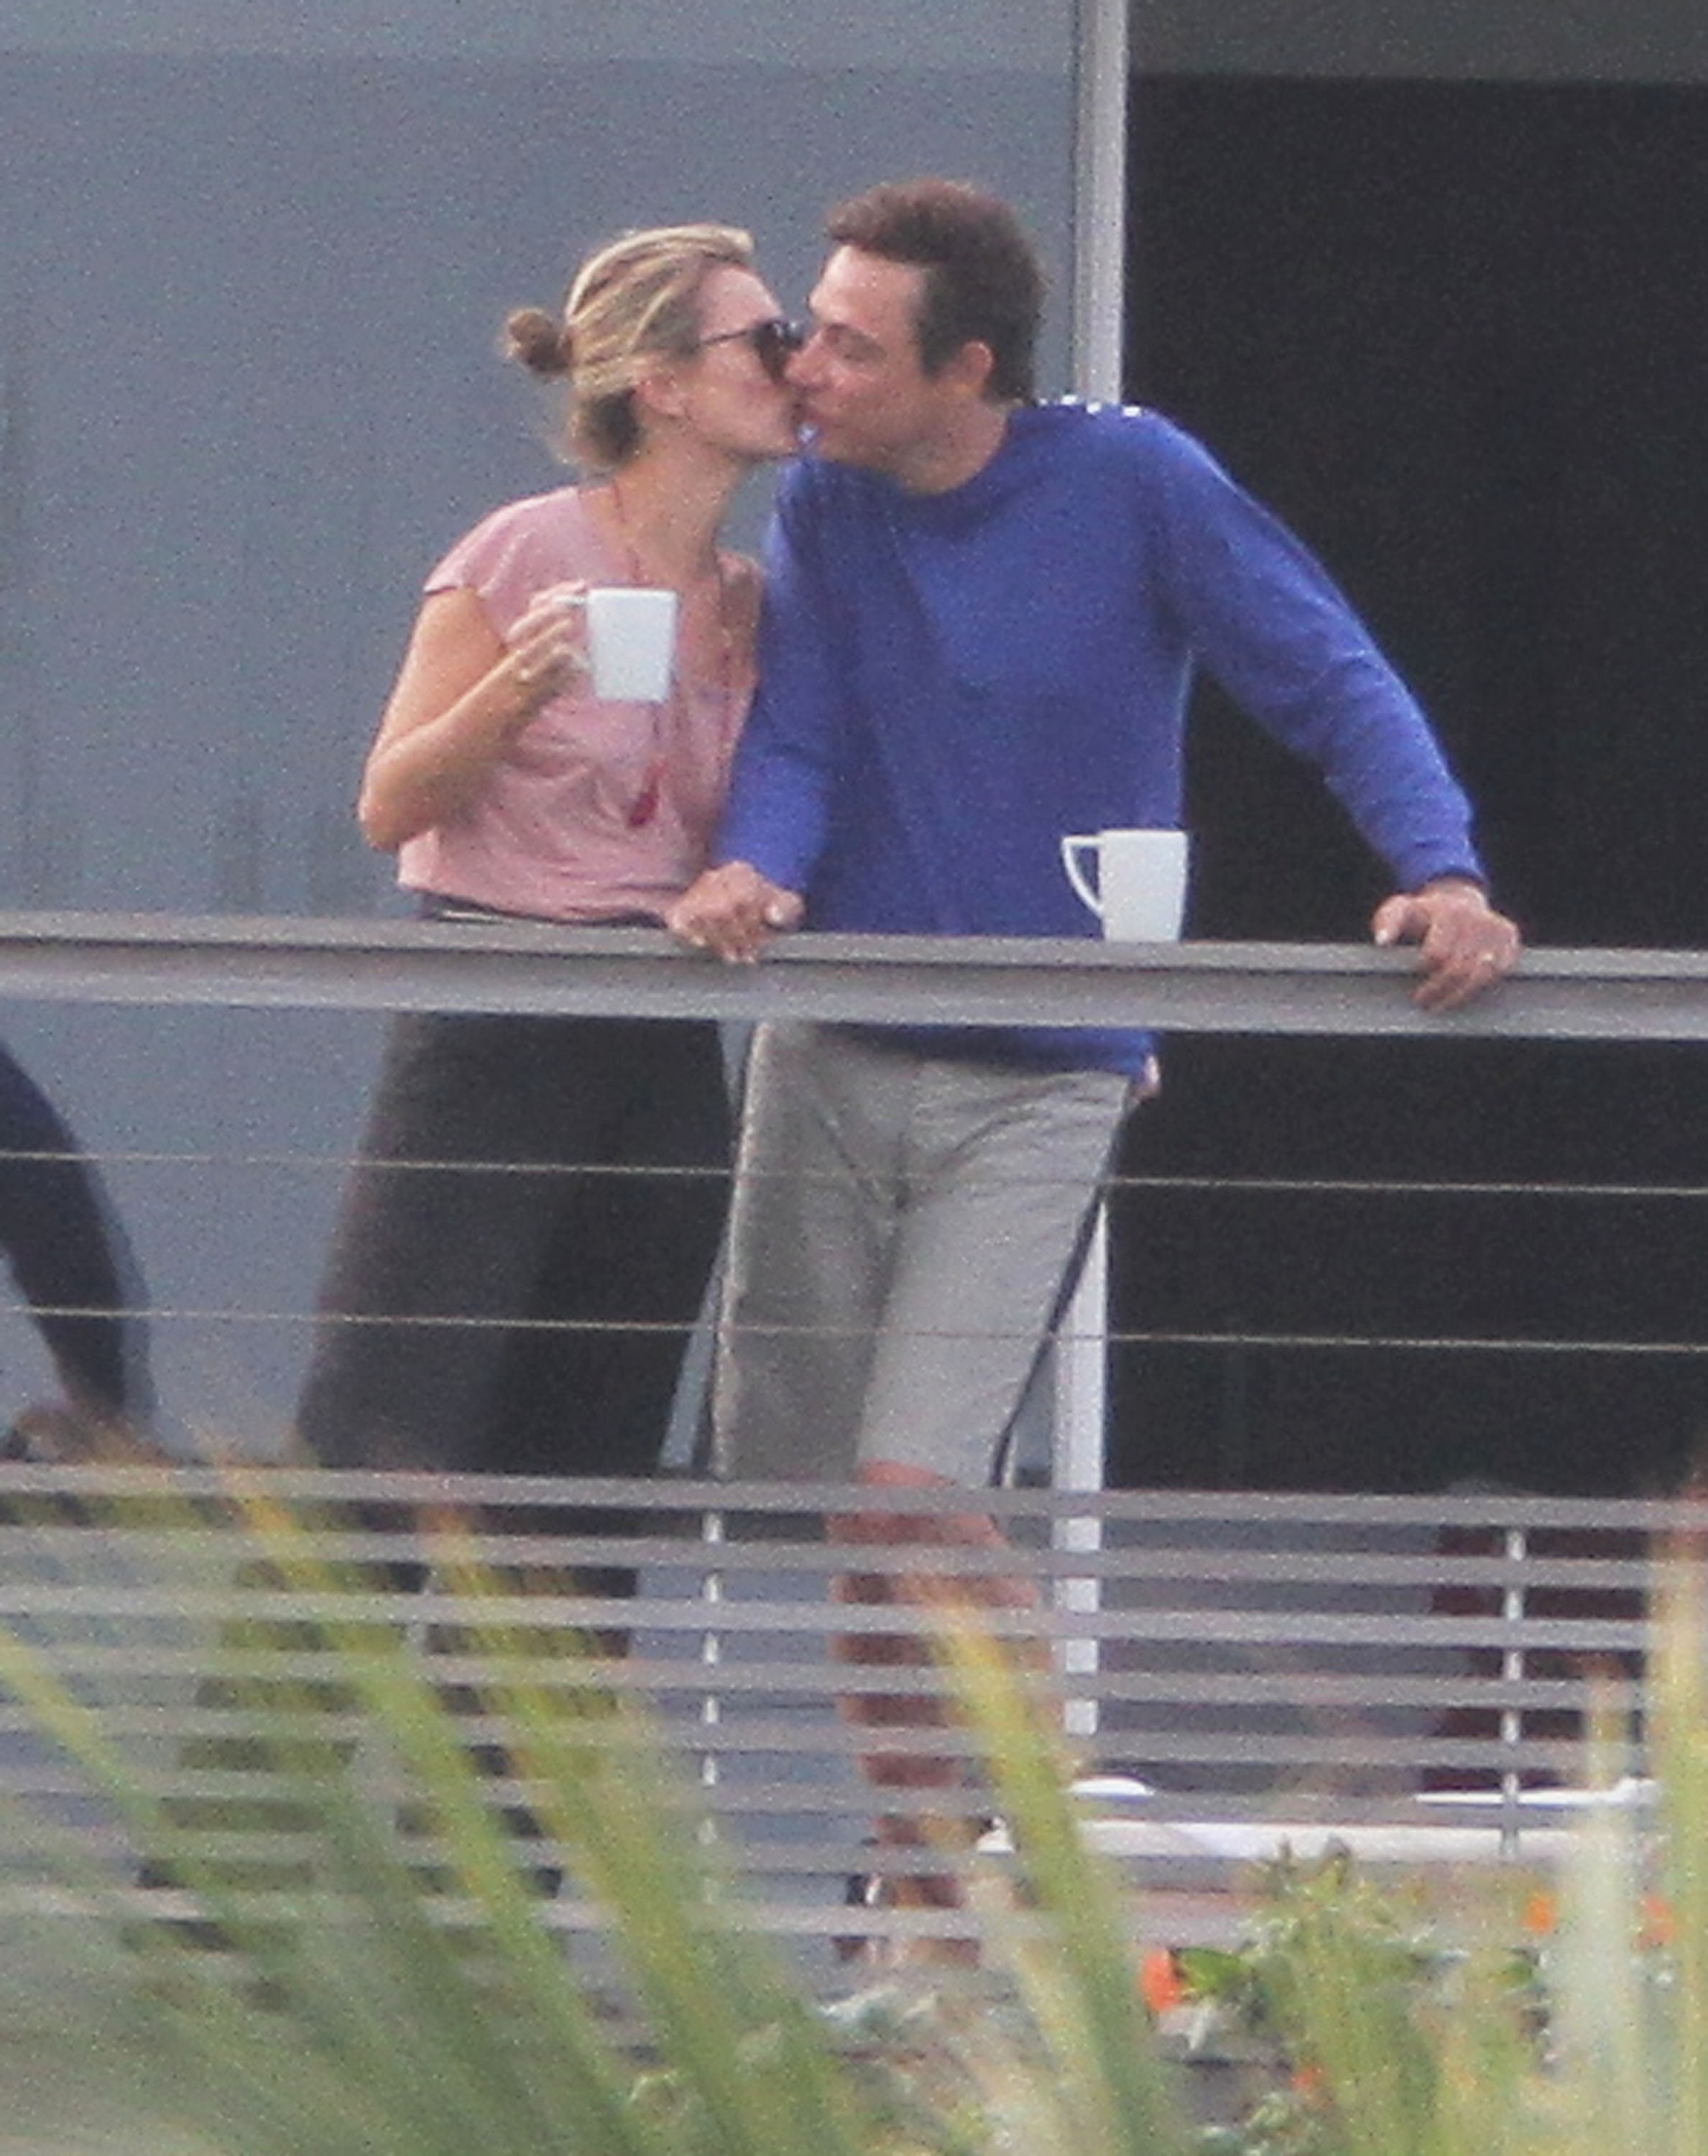 Kate moss kissed her husband, Jamie Hince.